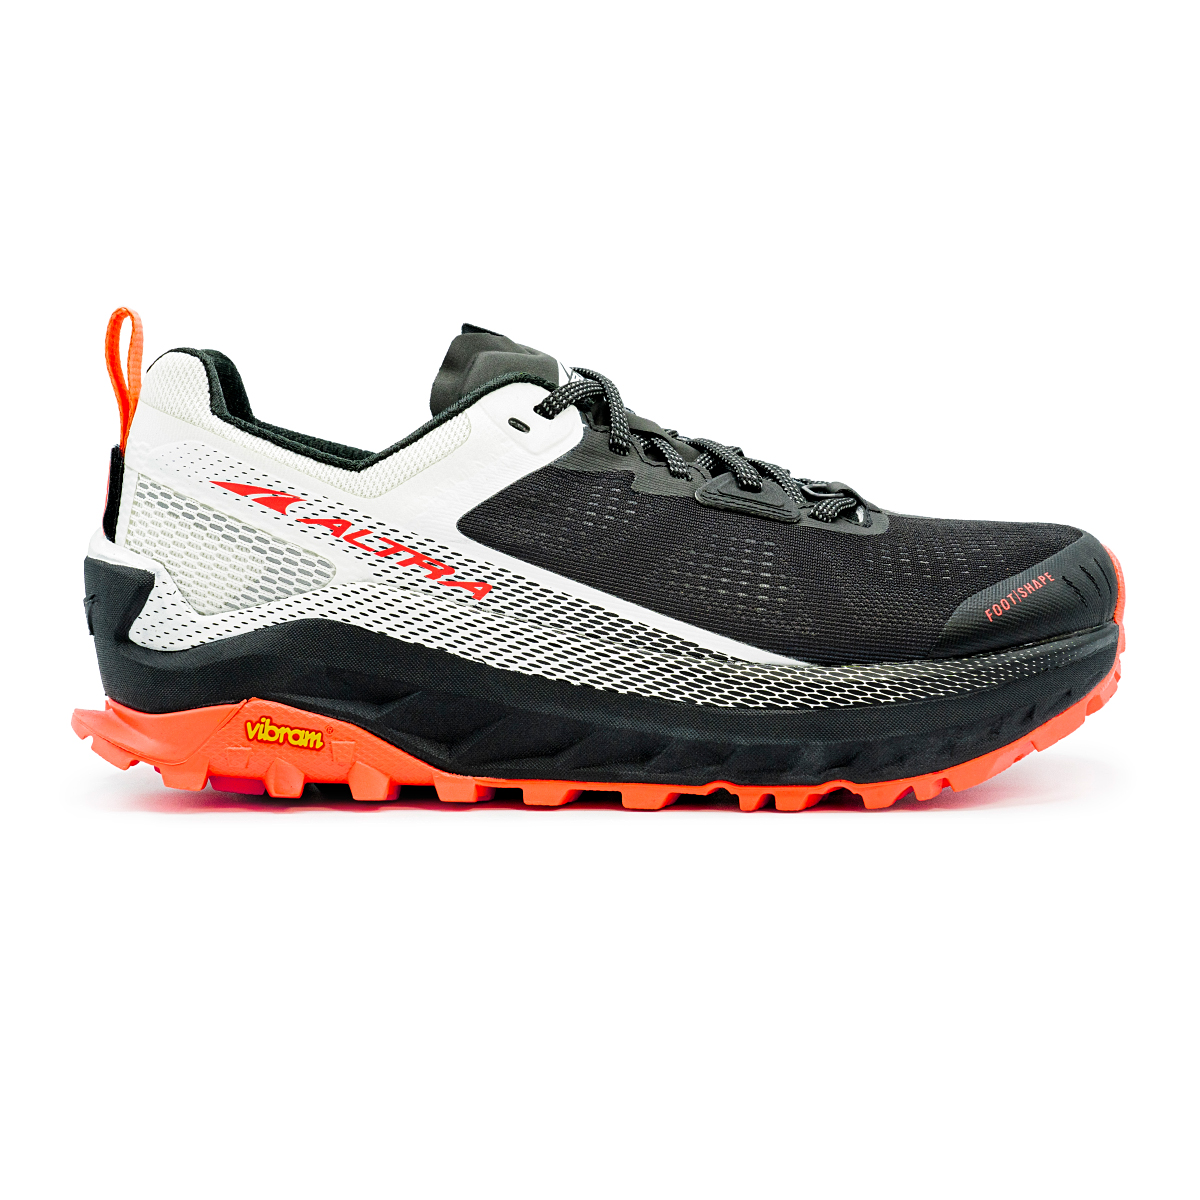 Women's Altra Olympus 4 Trail Running Shoe - Color: Black/White - Size: 9 - Width: Regular, Black/White, large, image 1